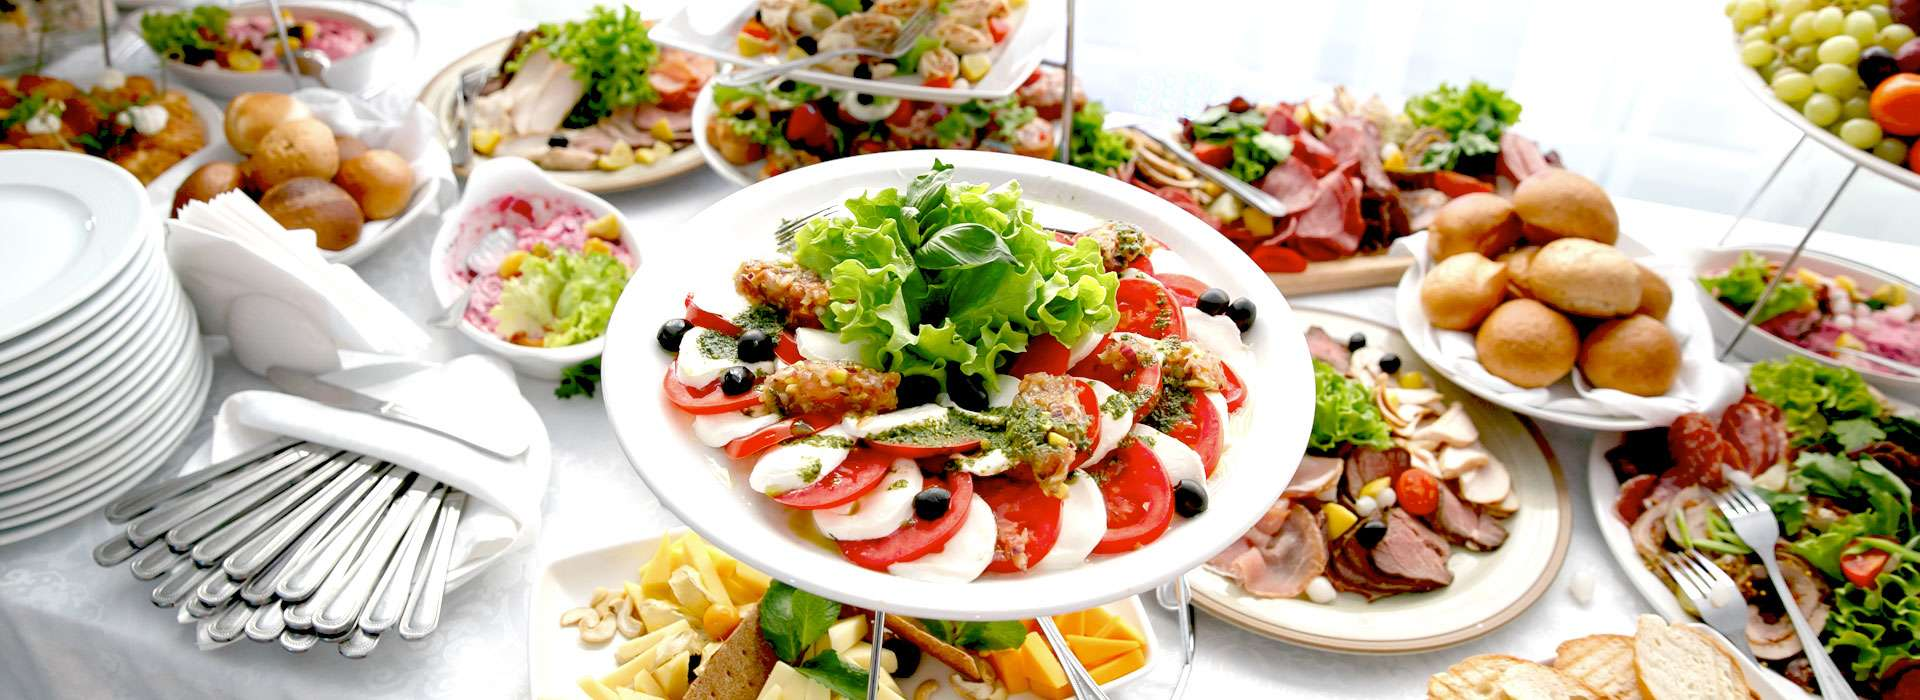 Laubster's Catering - Best Central Florida Corporate Events Catering